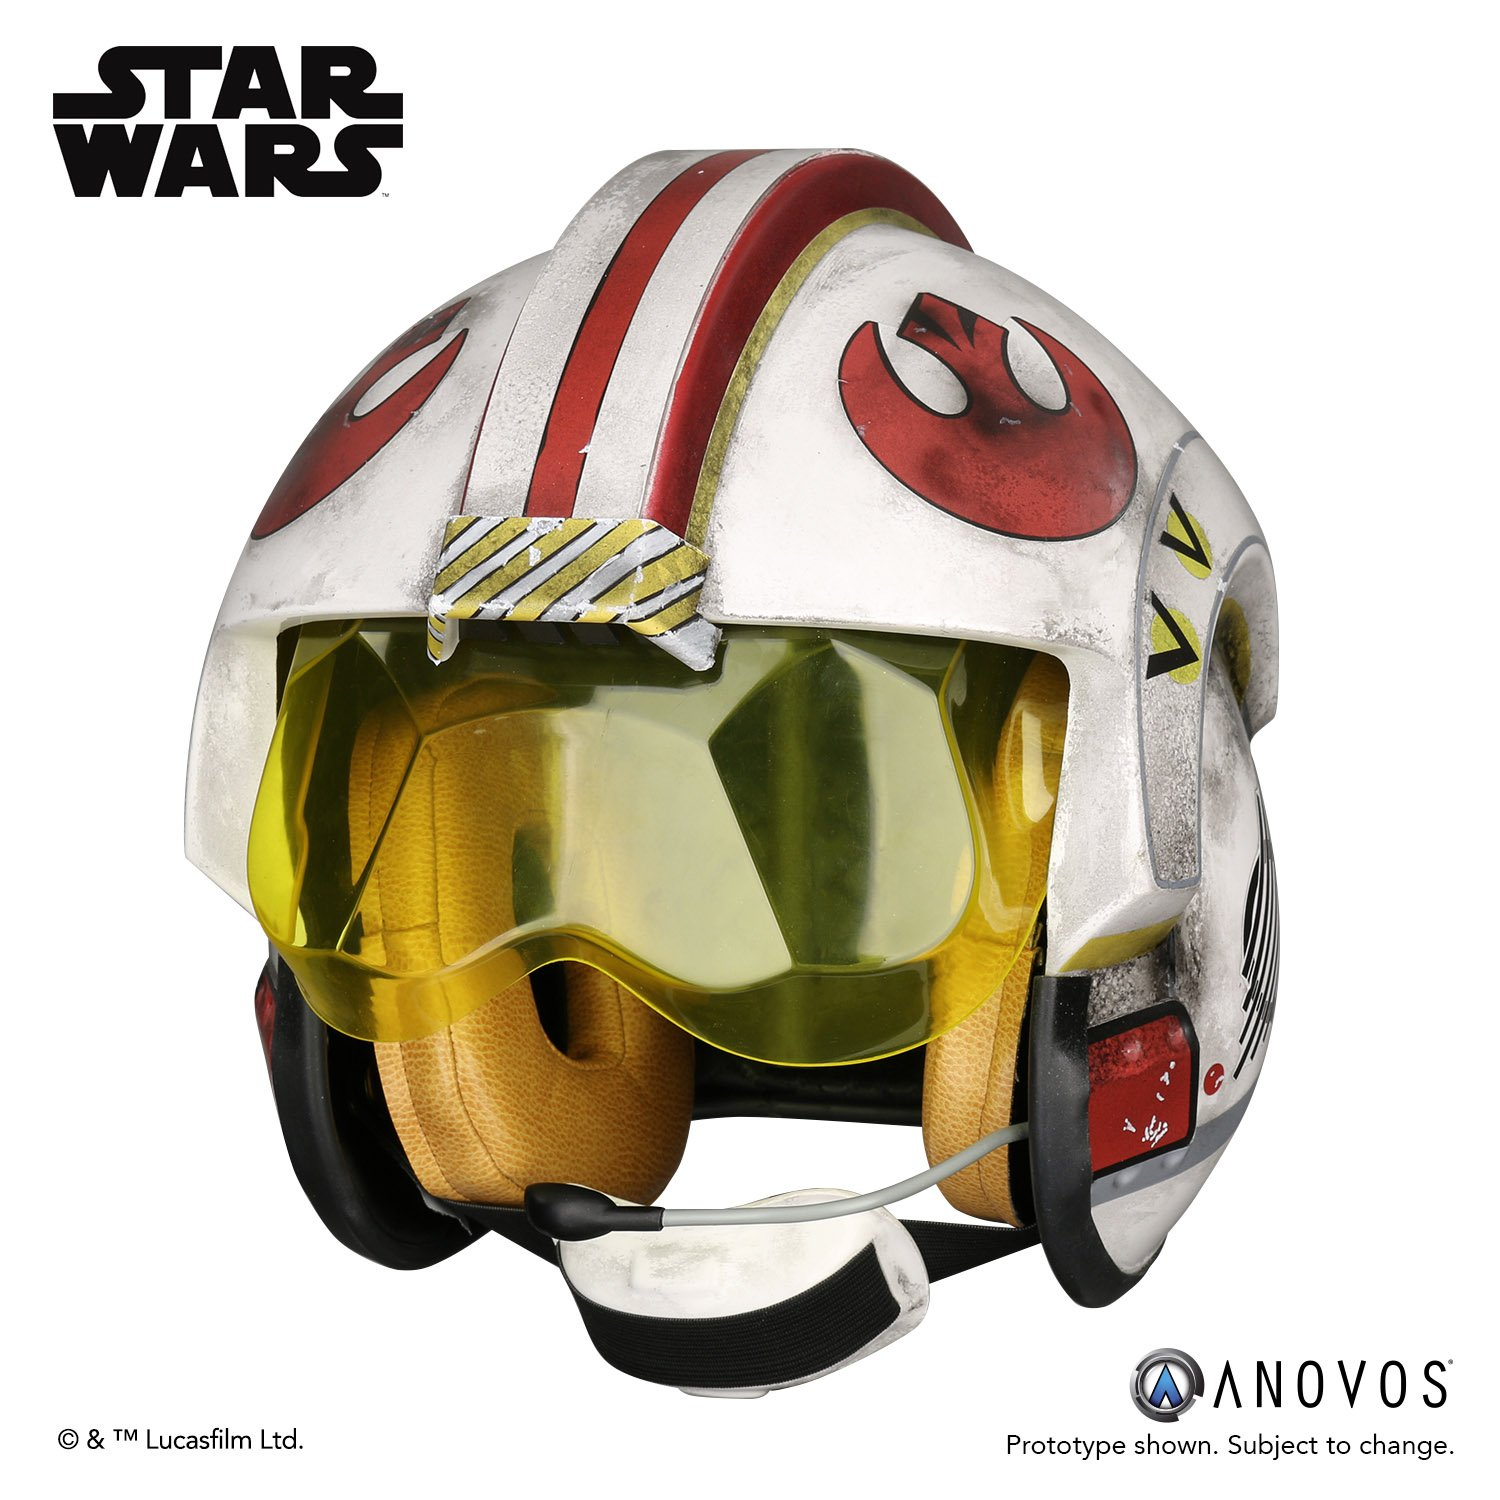 Luke_Skywalker Rebel X-Wing Pilot Helmet 2